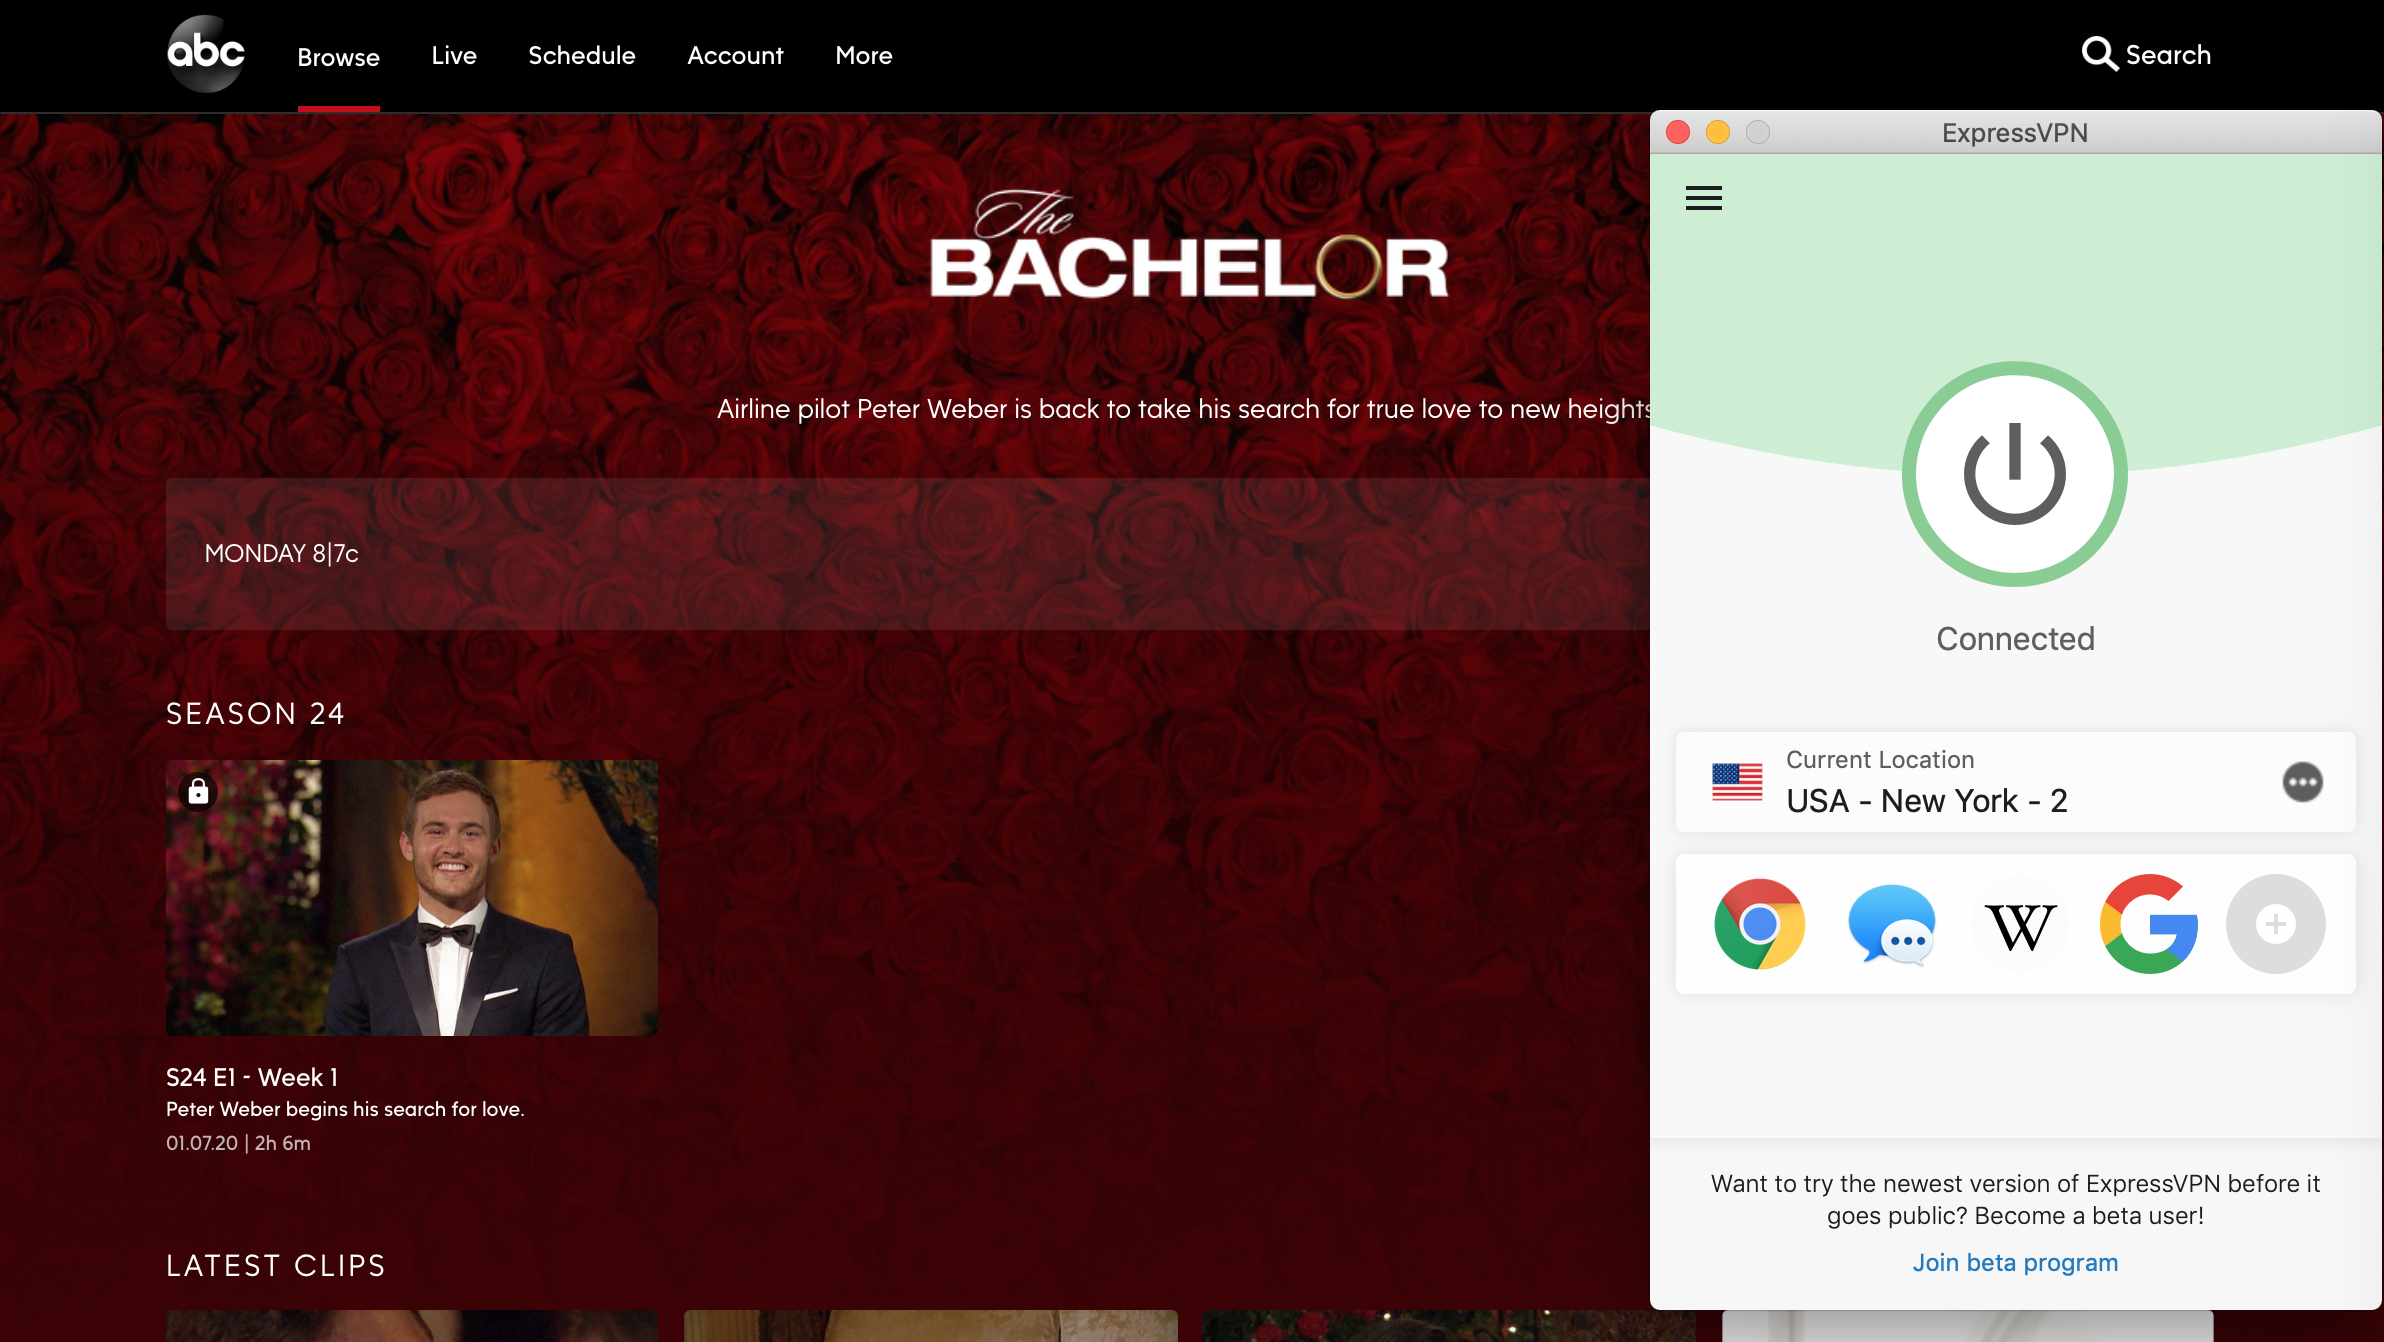 Screenshot of the The Bachelor on ABC with ExpressVPN connected